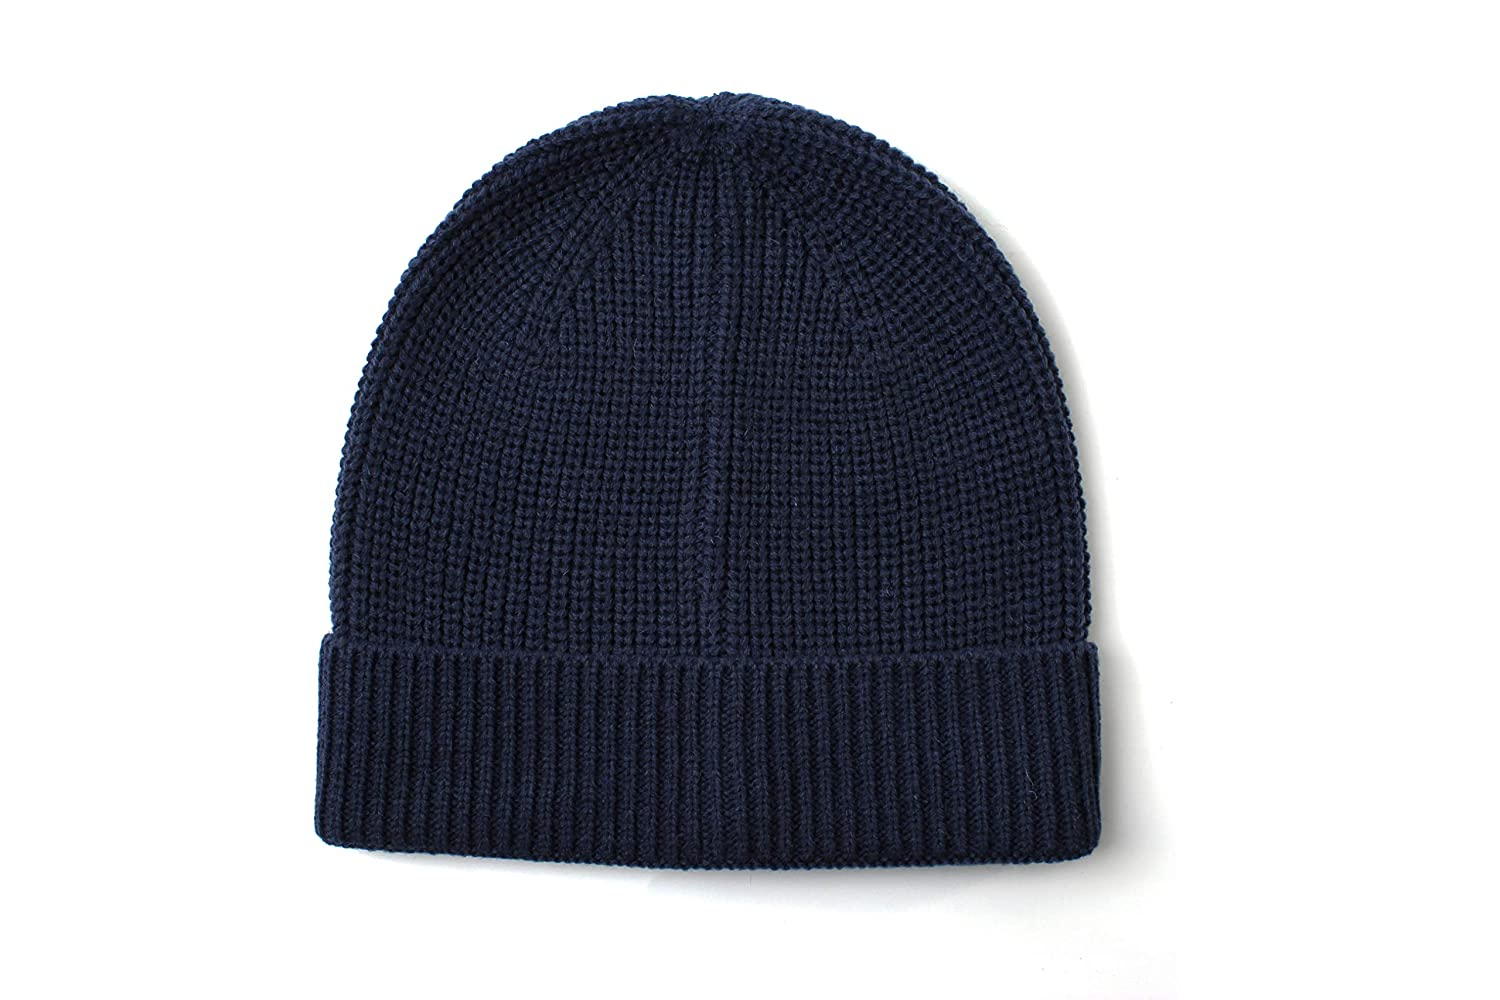 LANGZHEN Wool hat for Men Cable Knit Beanie Mens Winter Hats Warm Thick Ski hat